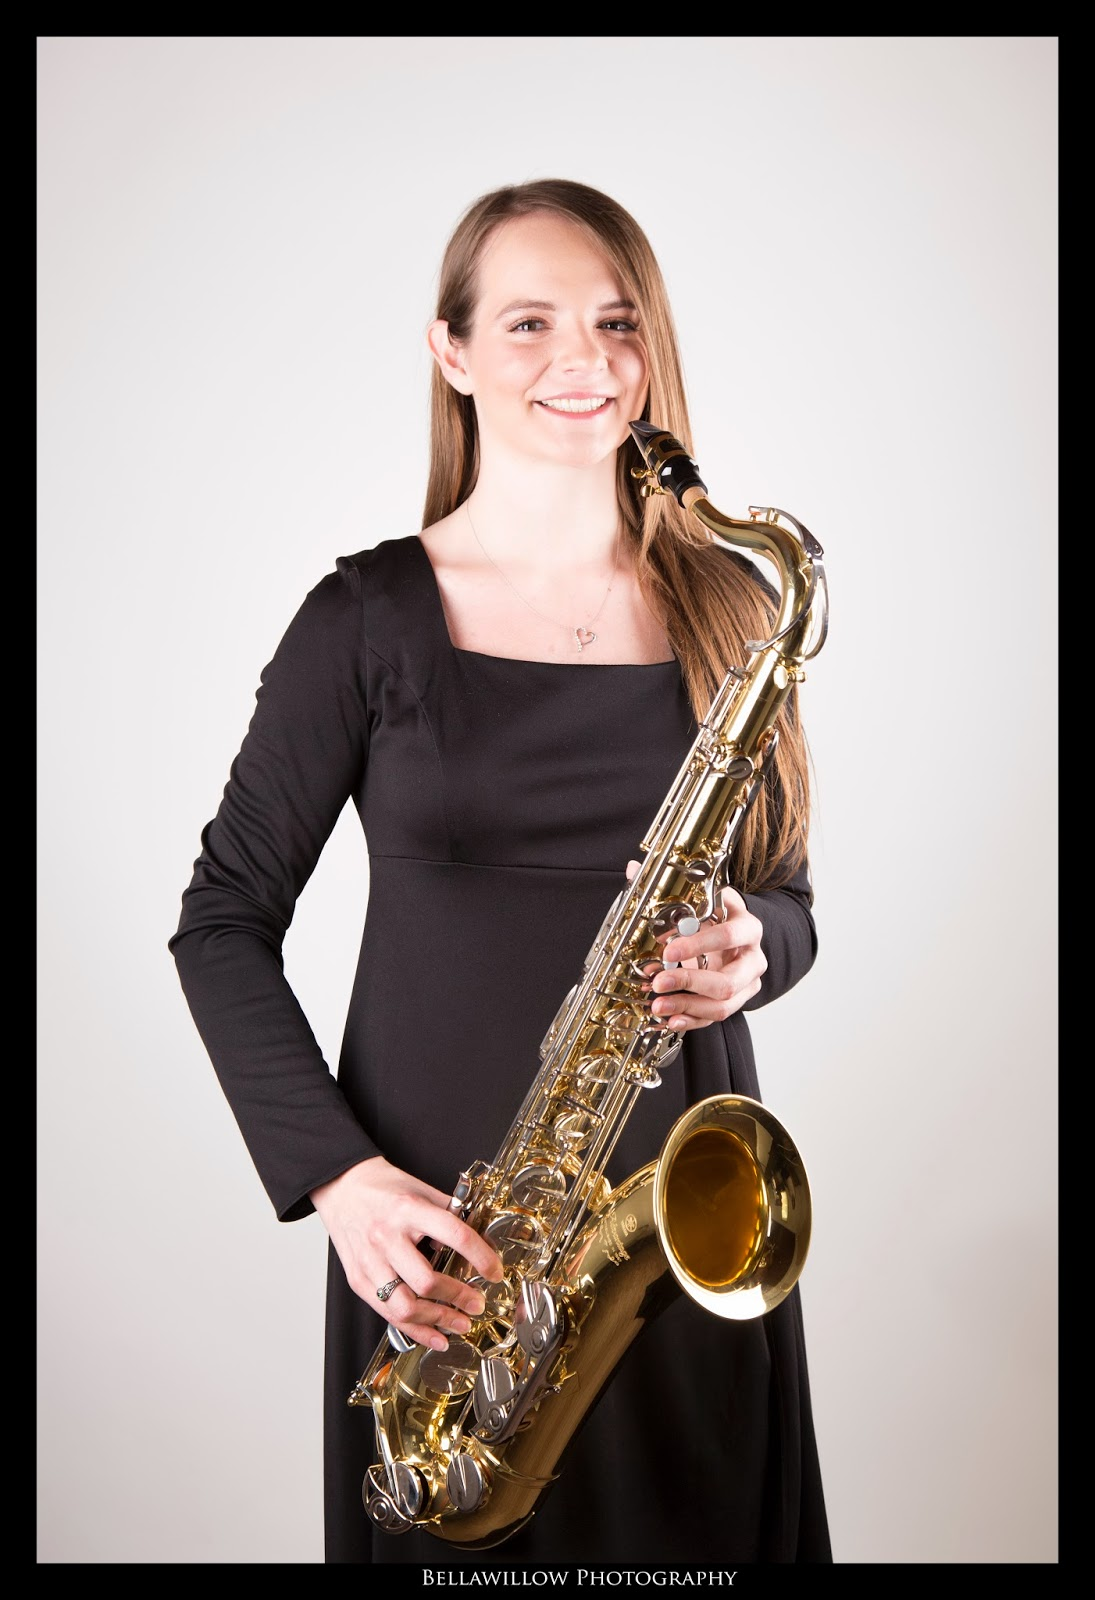 The do it yourself lifestyle senior pictures part 2 kelly is a member of her high school band we took some in studio senior pictures of her with her clarinet and saxophone solutioingenieria Image collections